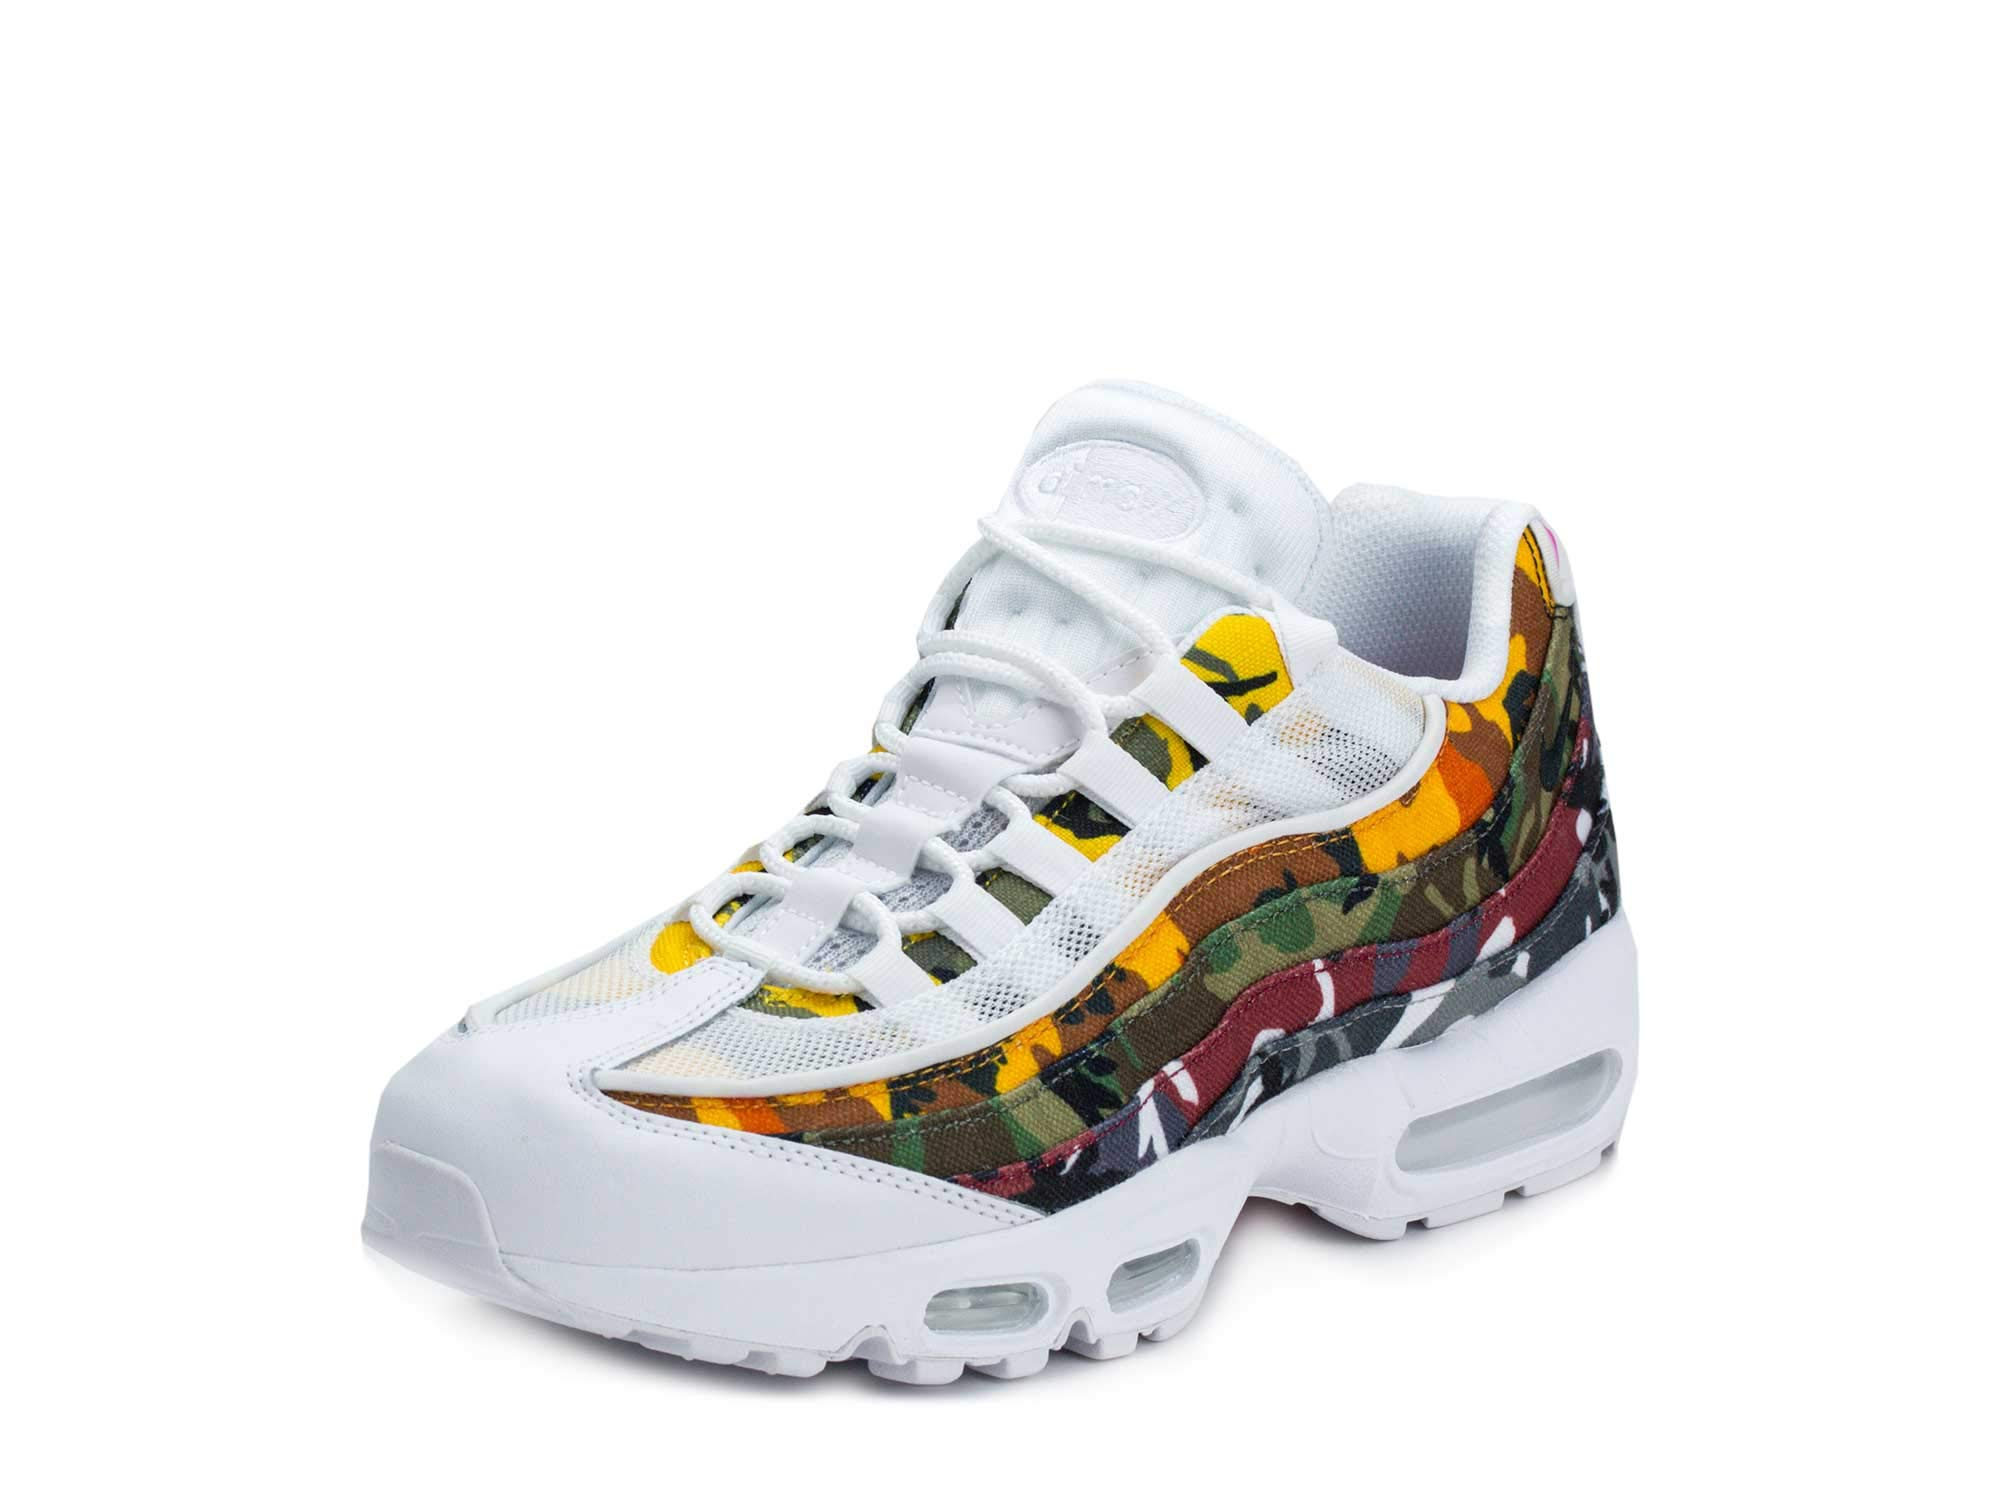 promo code 00e80 300d5 Nike Men's Air Max 95 ERDL Party, White/Multi-Color, 8.5 M US